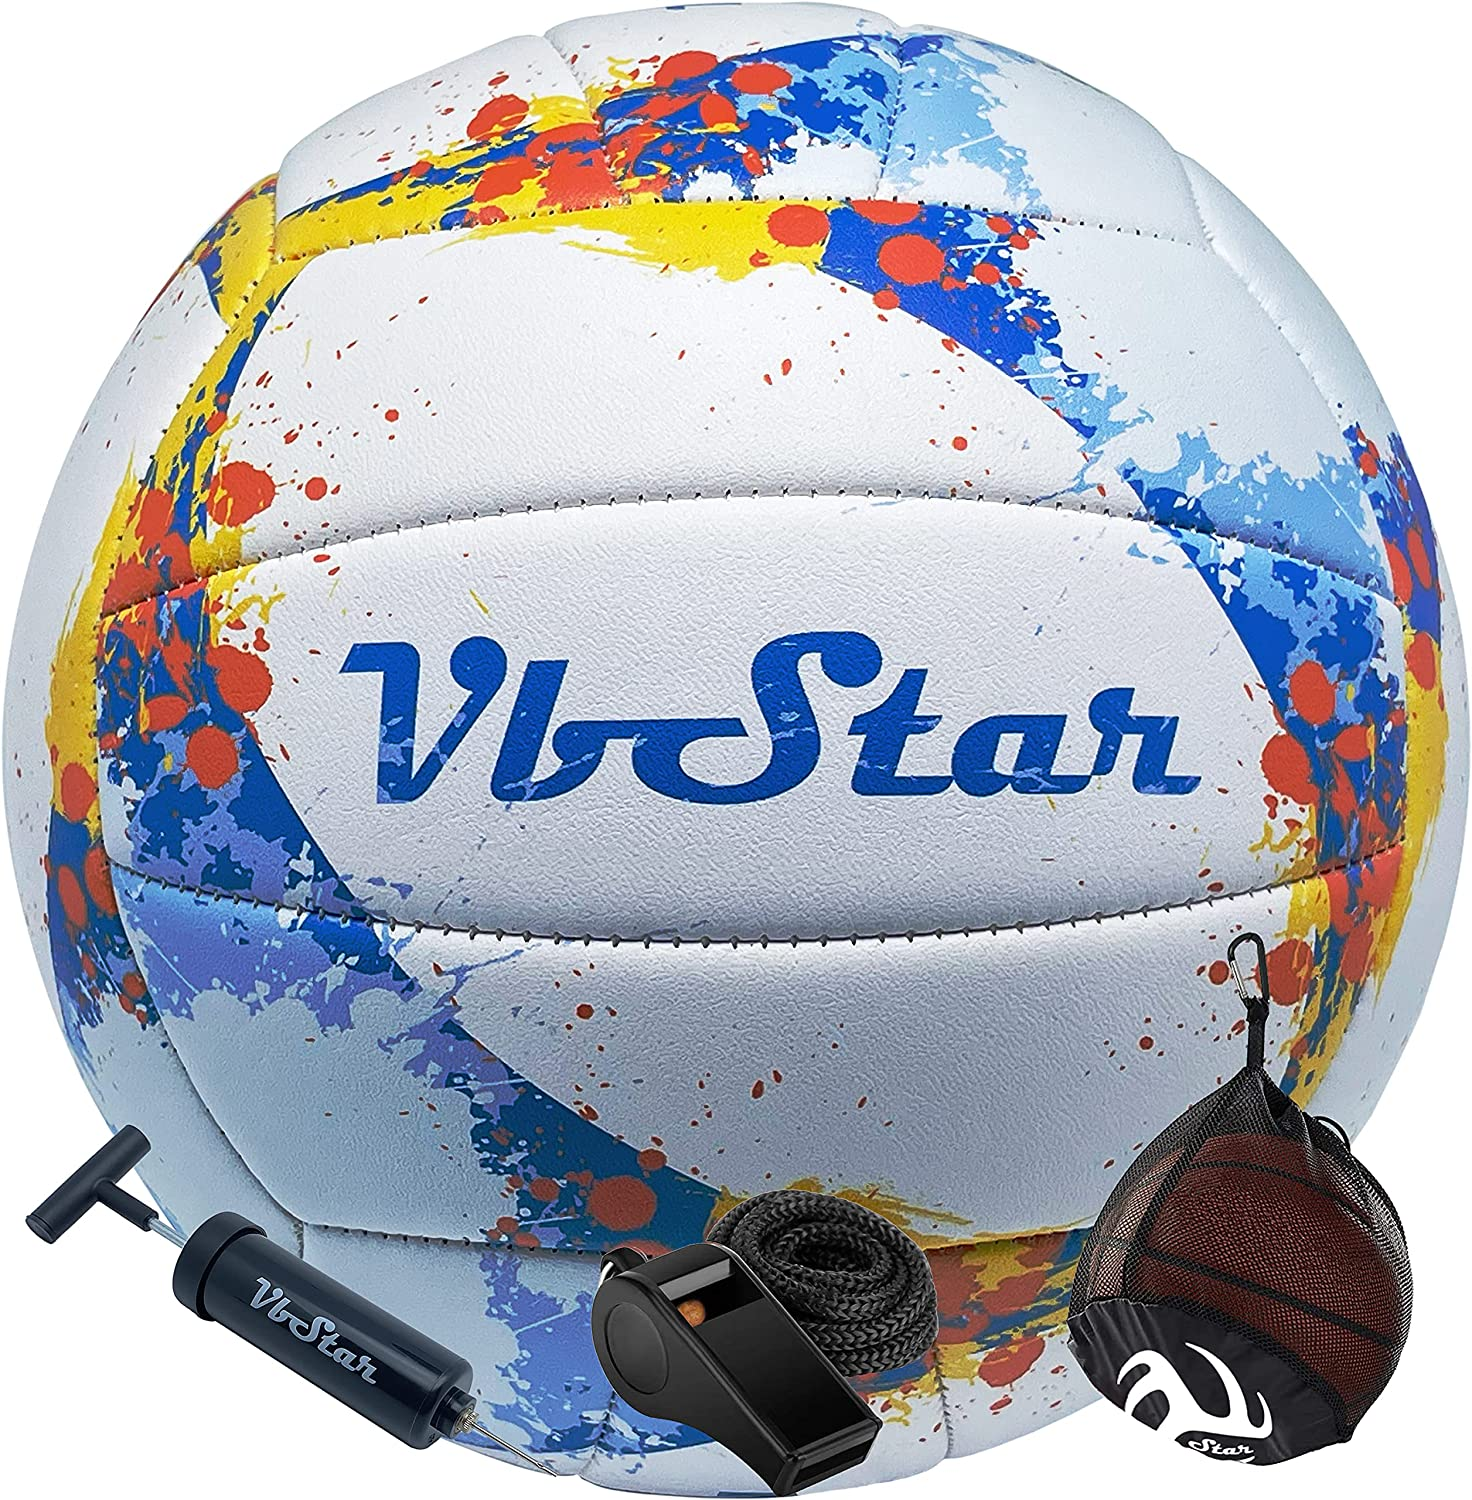 VbStar Volleyball Kit Drawstring Ball Hand-Held Mini with New Lowest price challenge Shipping Free Bag